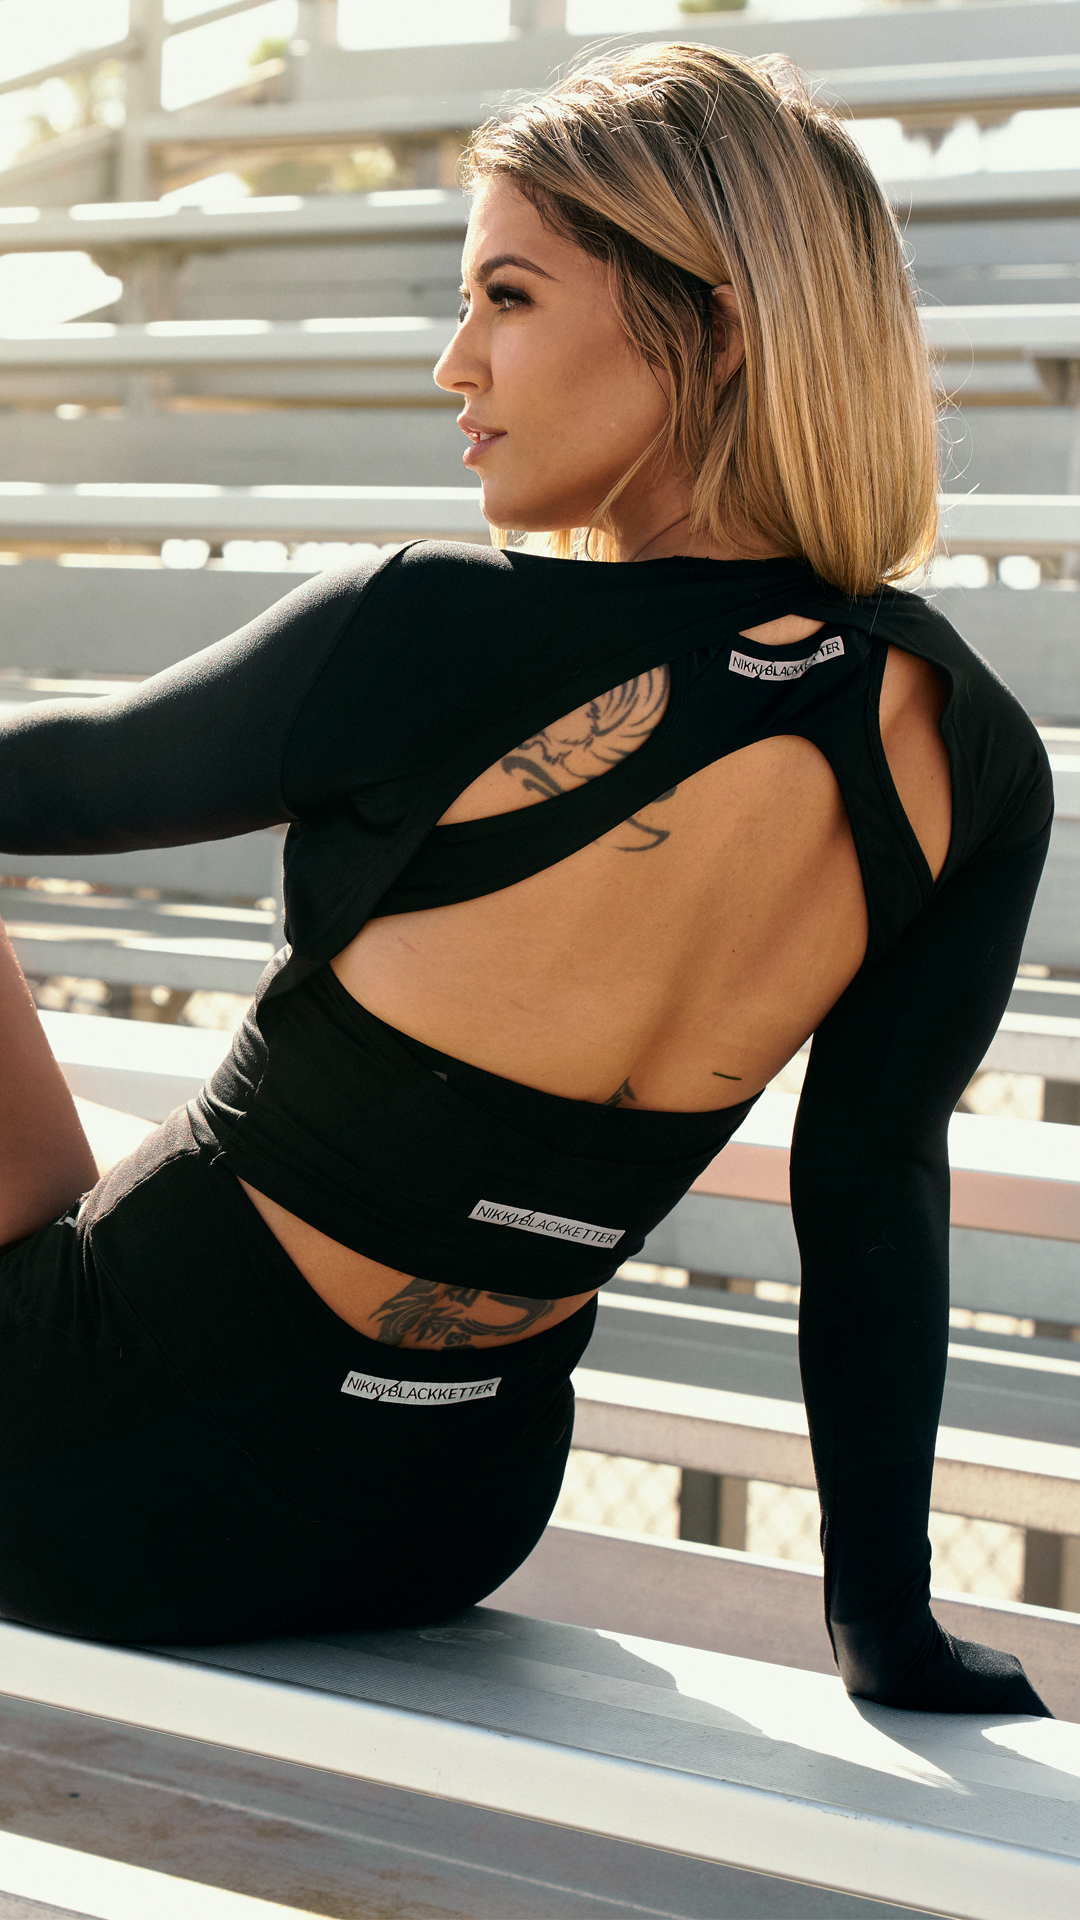 The Cross Back Sports Bra and Boost Shorts are the perfect pair for your next workout. The open back and low cut front of the crop